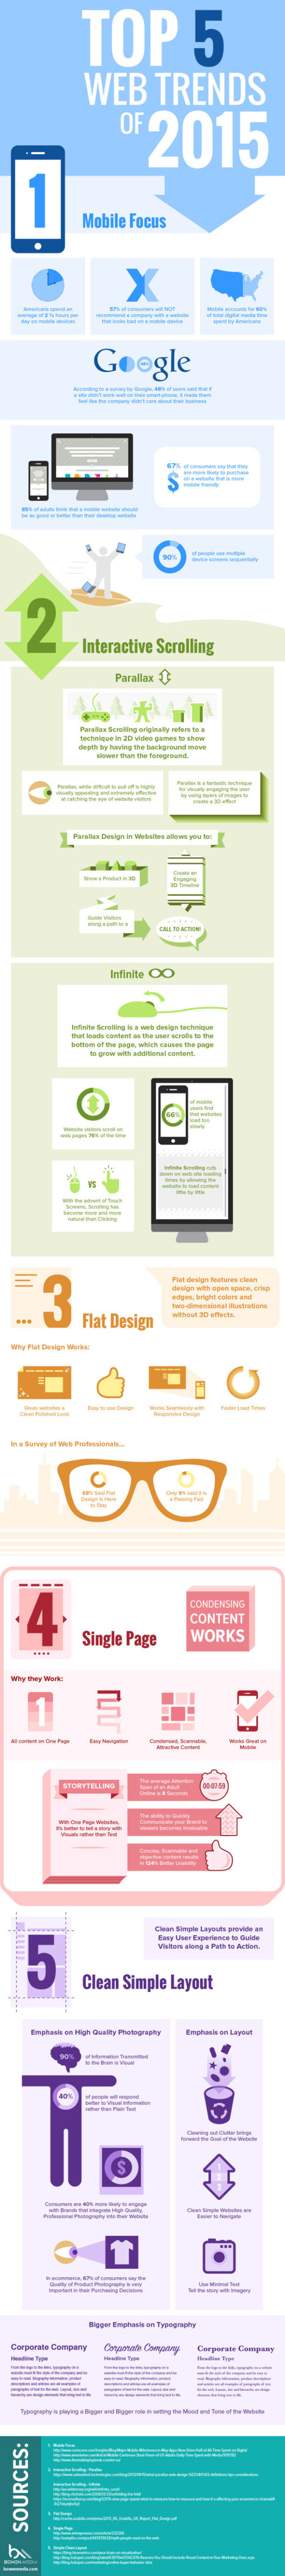 Top 5 Website Design Trends for 2015 | Better know and better use Social Media today (facebook, twitter...) | Scoop.it